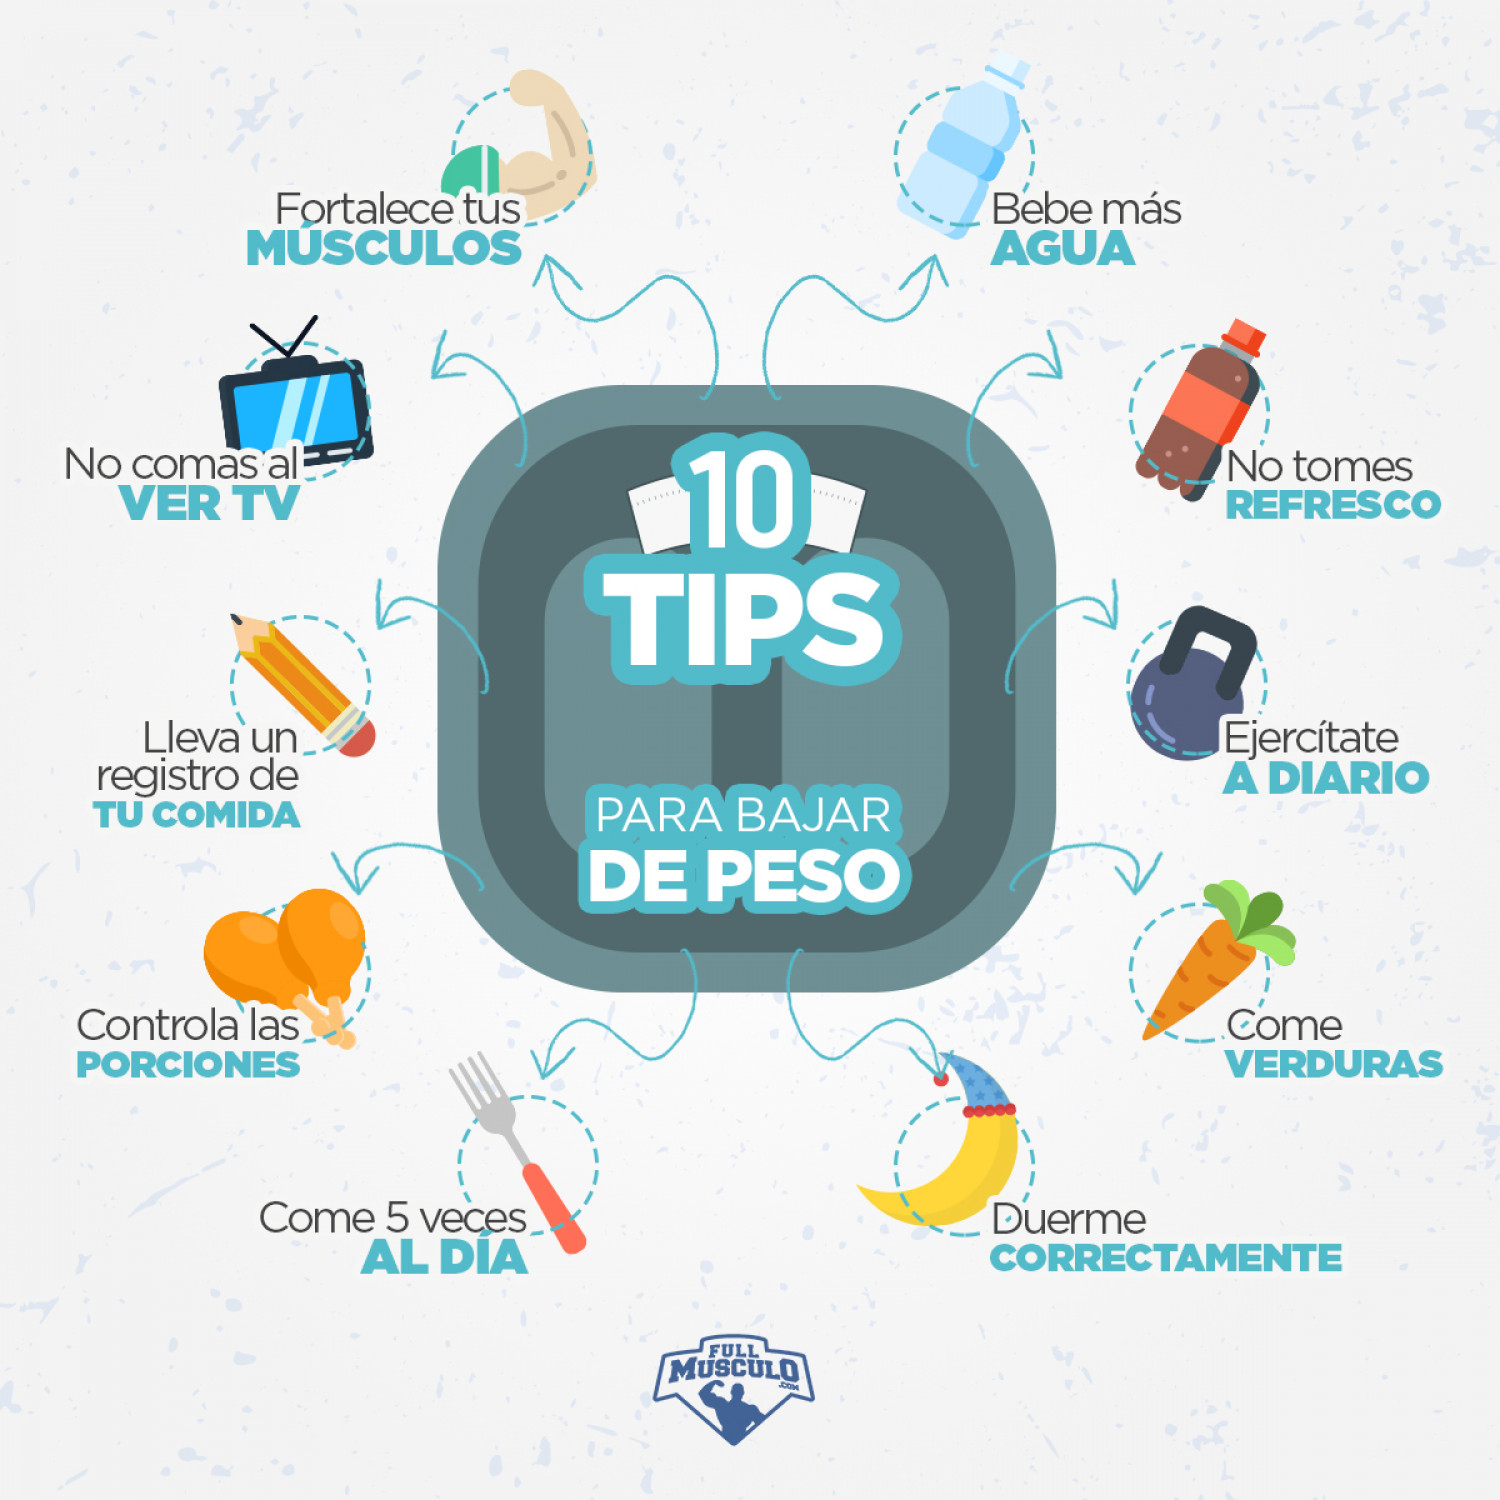 bajar de peso rapidamente tips for getting